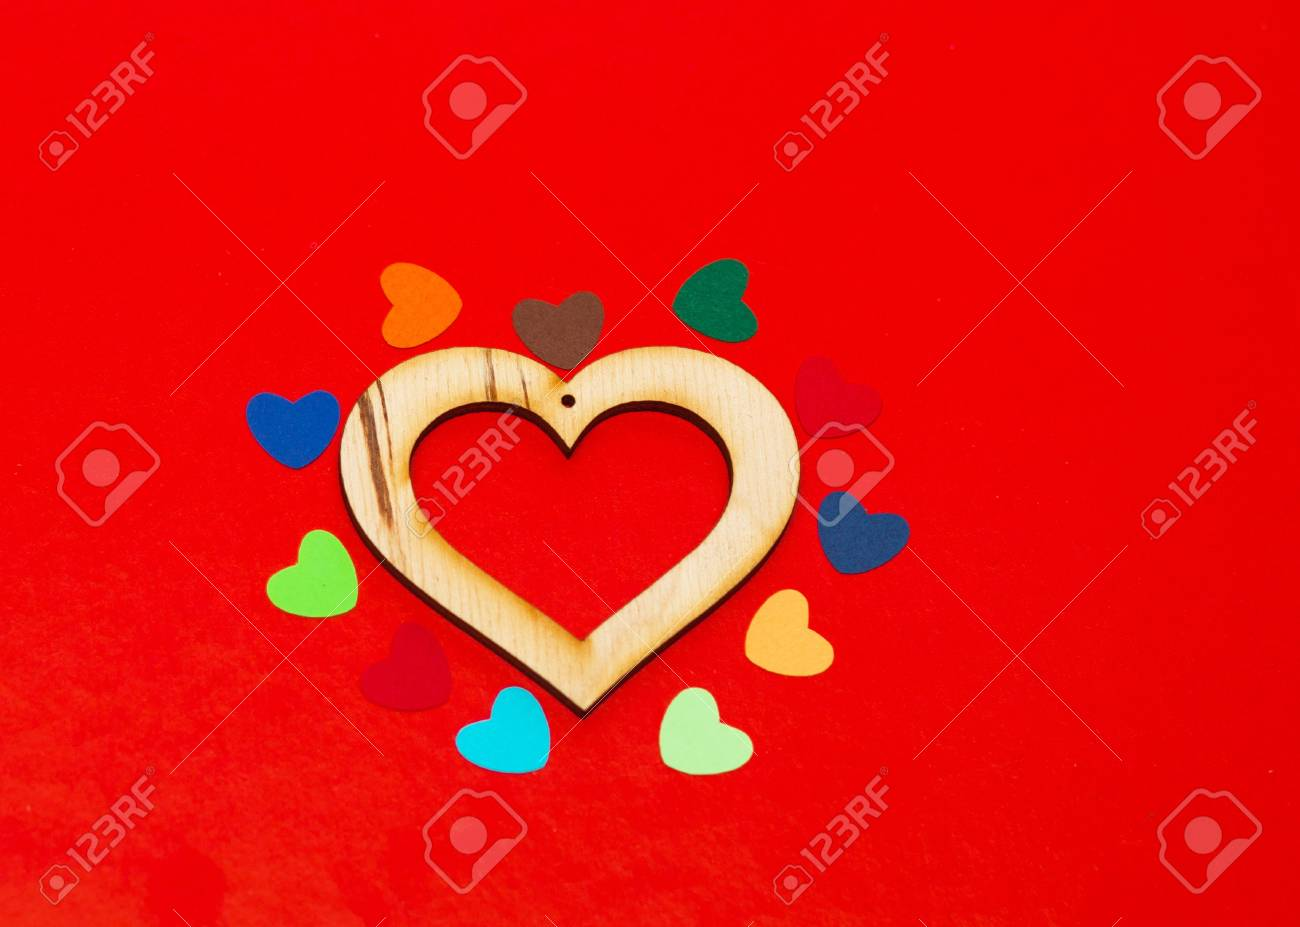 multicolored paper hearths around a wooden  heart  on red paper Stock Photo - 17024524